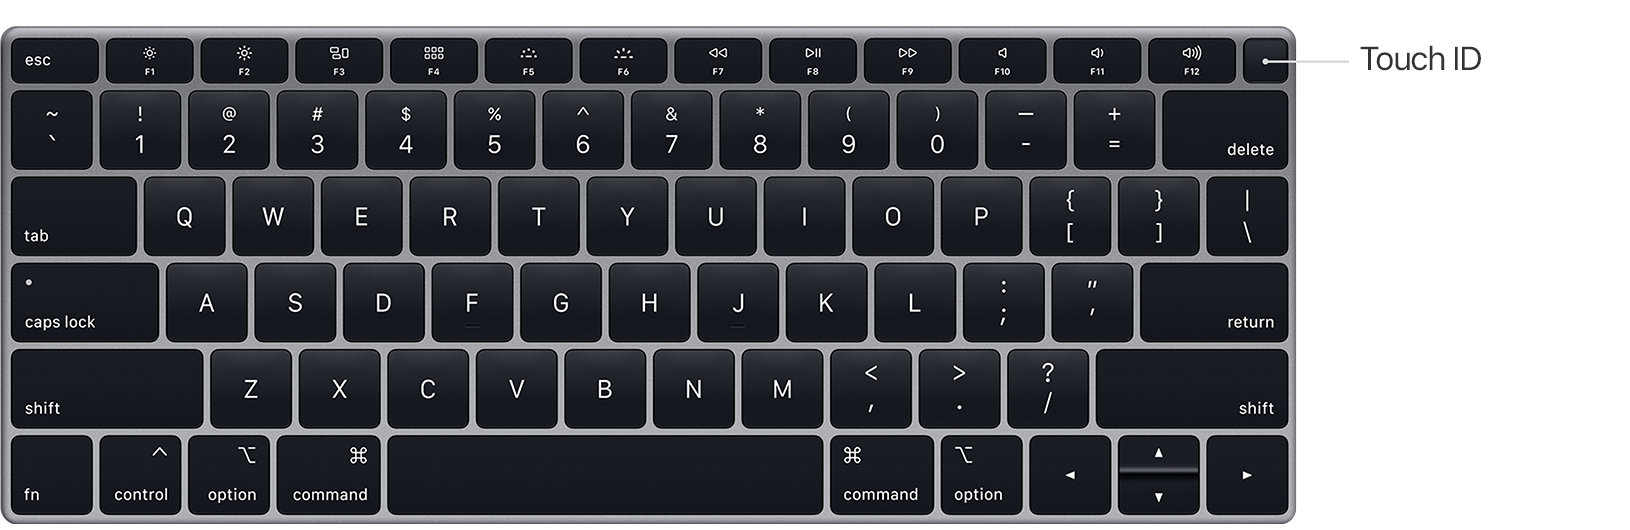 Clavier du MacBook Air (Retina, 13 pouces, 2018) doté du bouton Touch ID